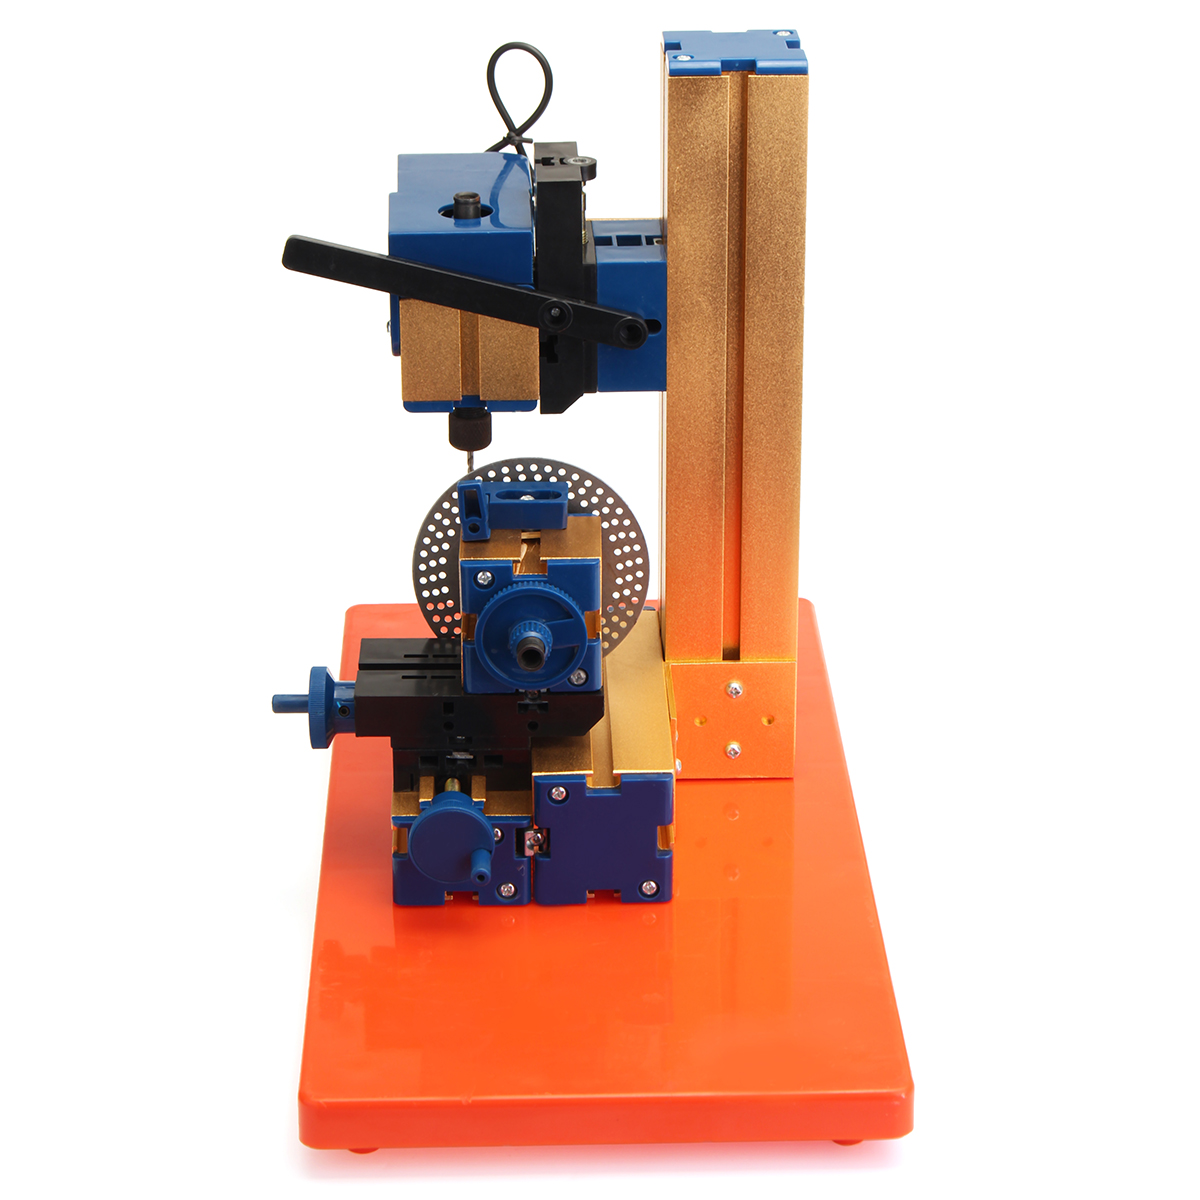 24W Wood Lathe Wood Working Lathe Machine DIY Woodworking Mini Rotary Spin Indexing Milling Tool